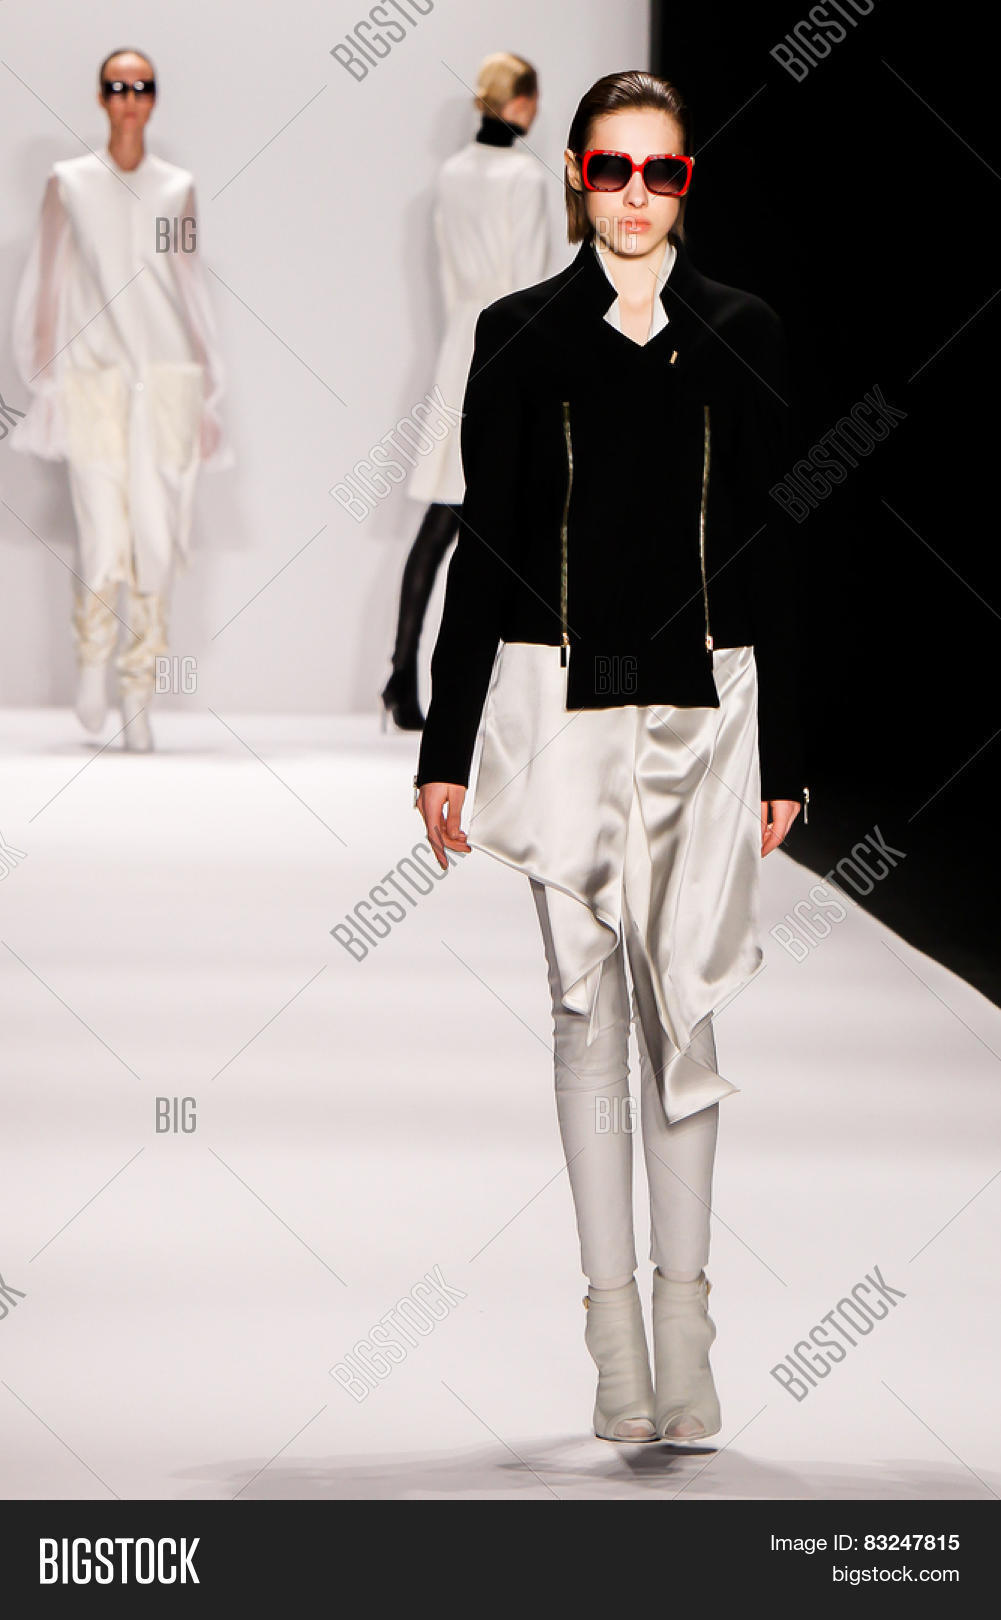 NEW YORK   FEB. 18, 2015: A Model Walks The Runway At The